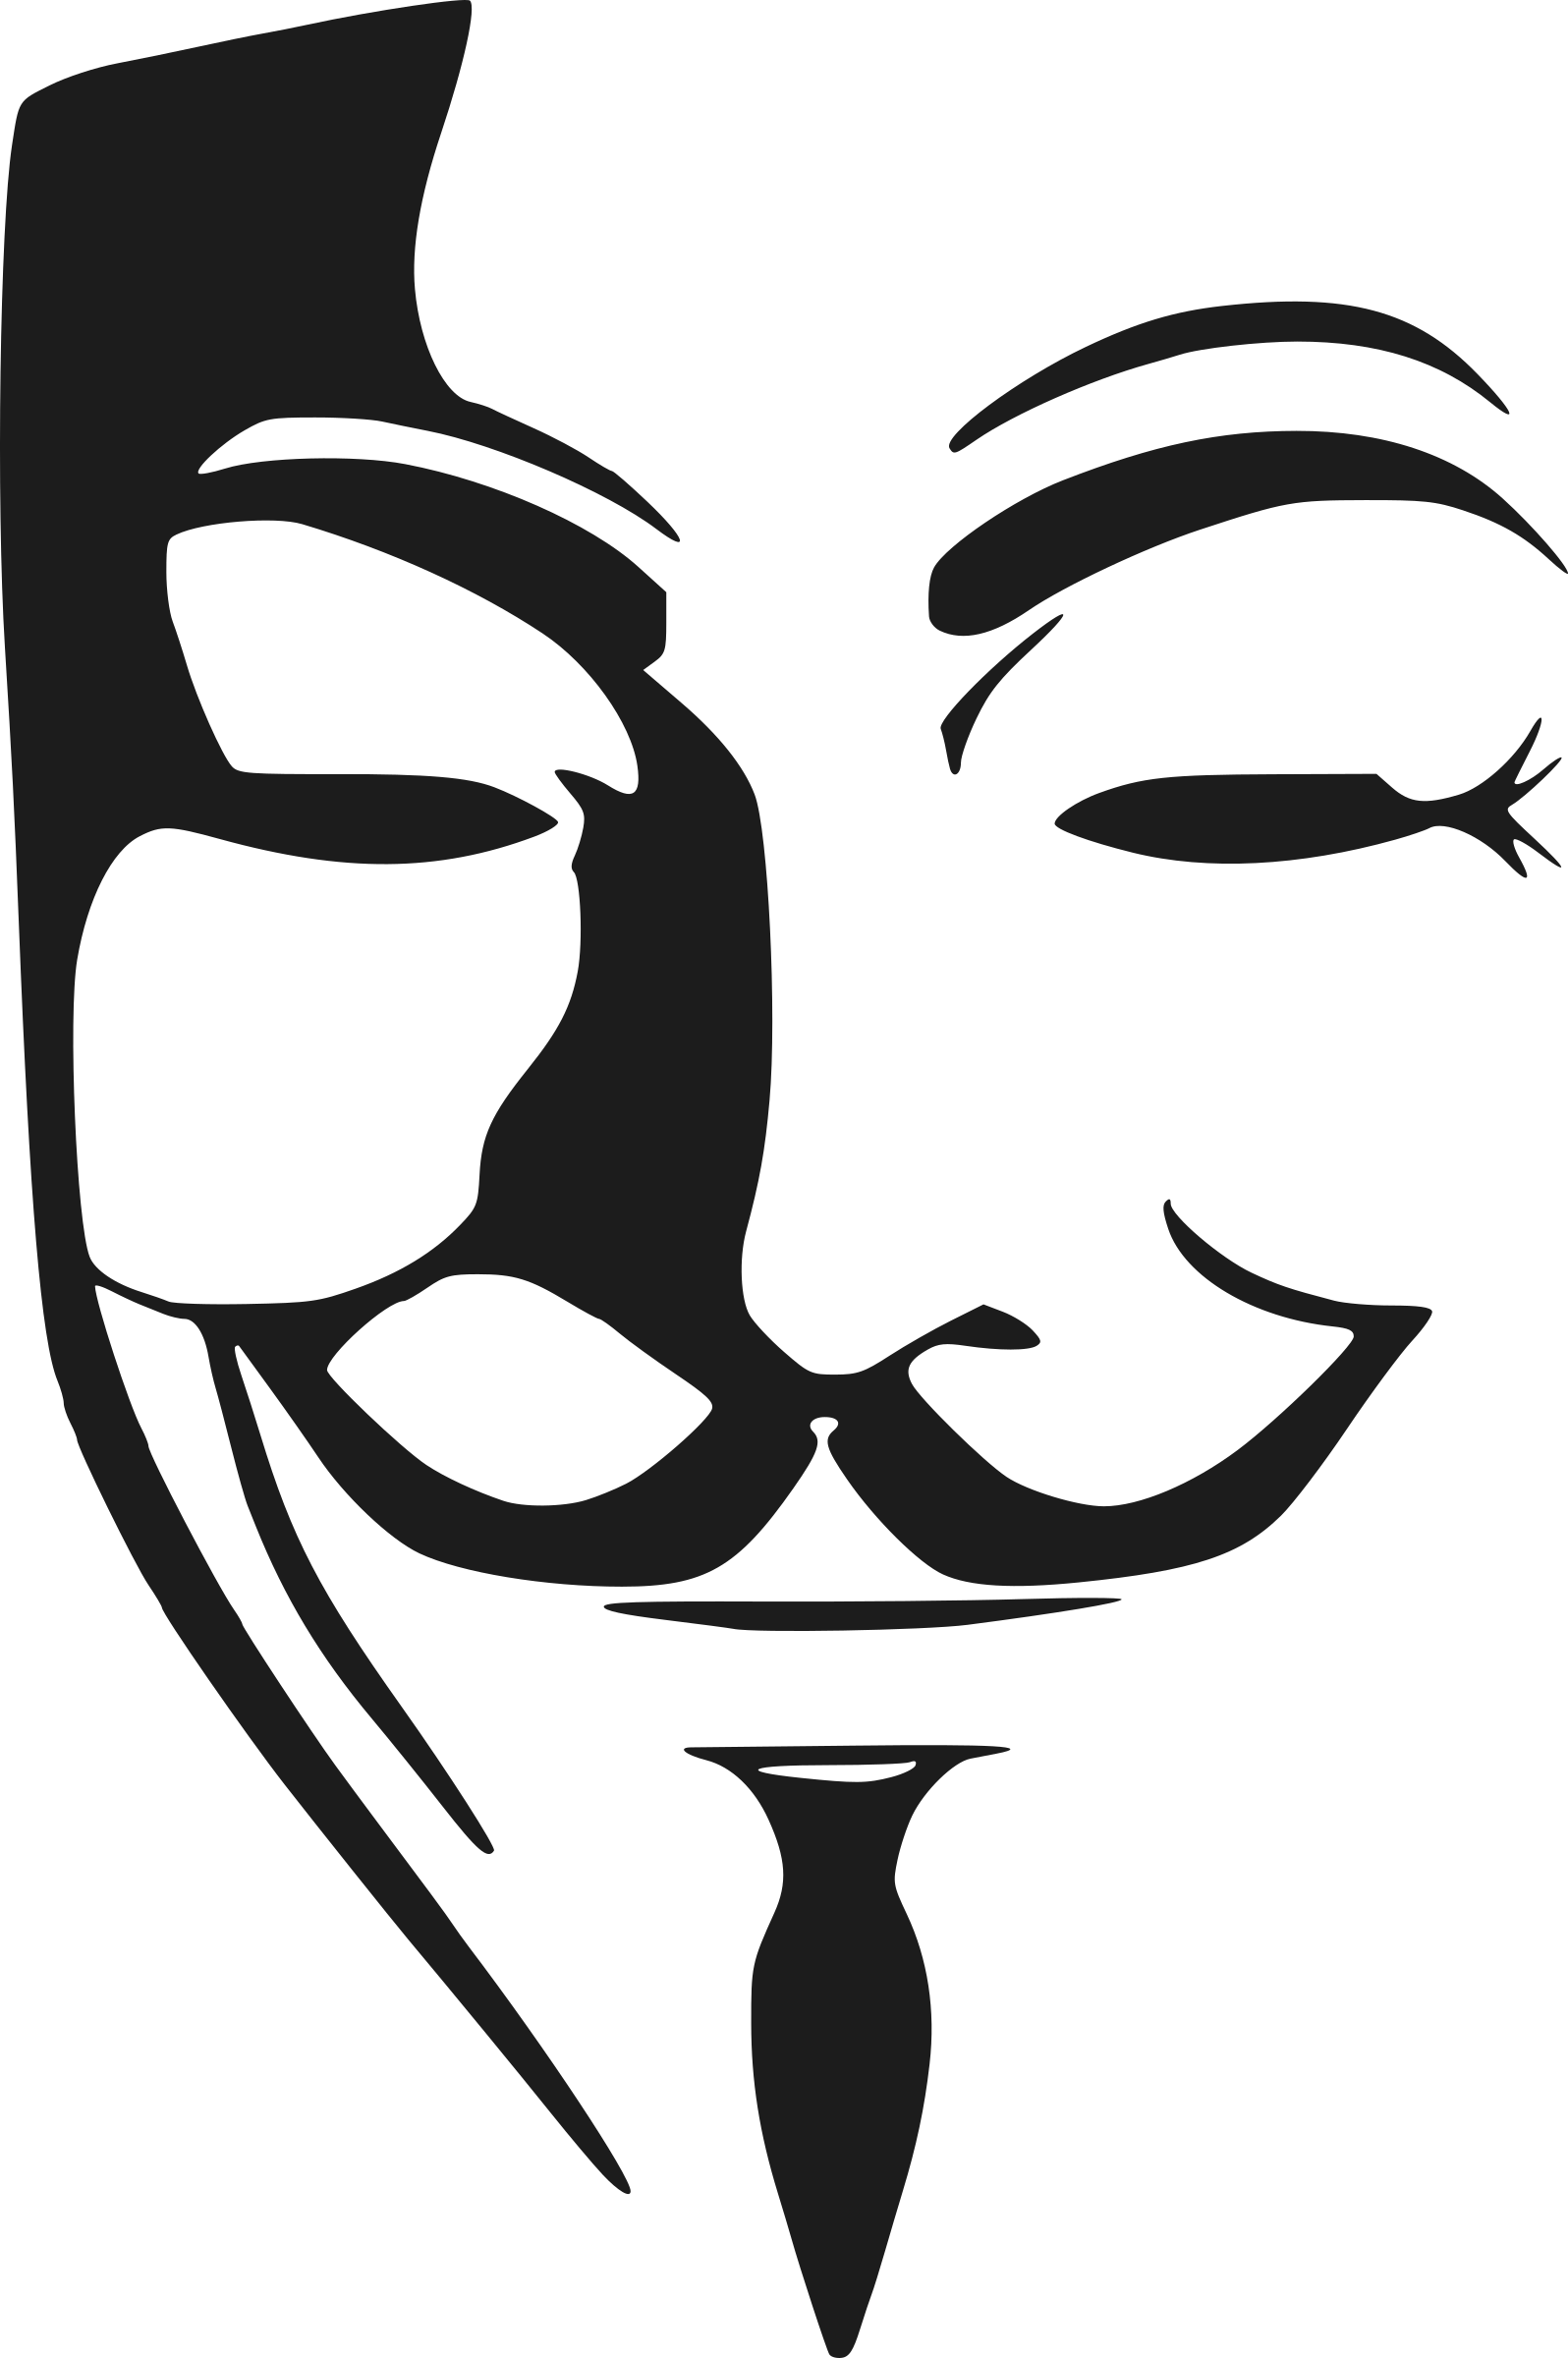 anonymous mask by yyk@mail.ru